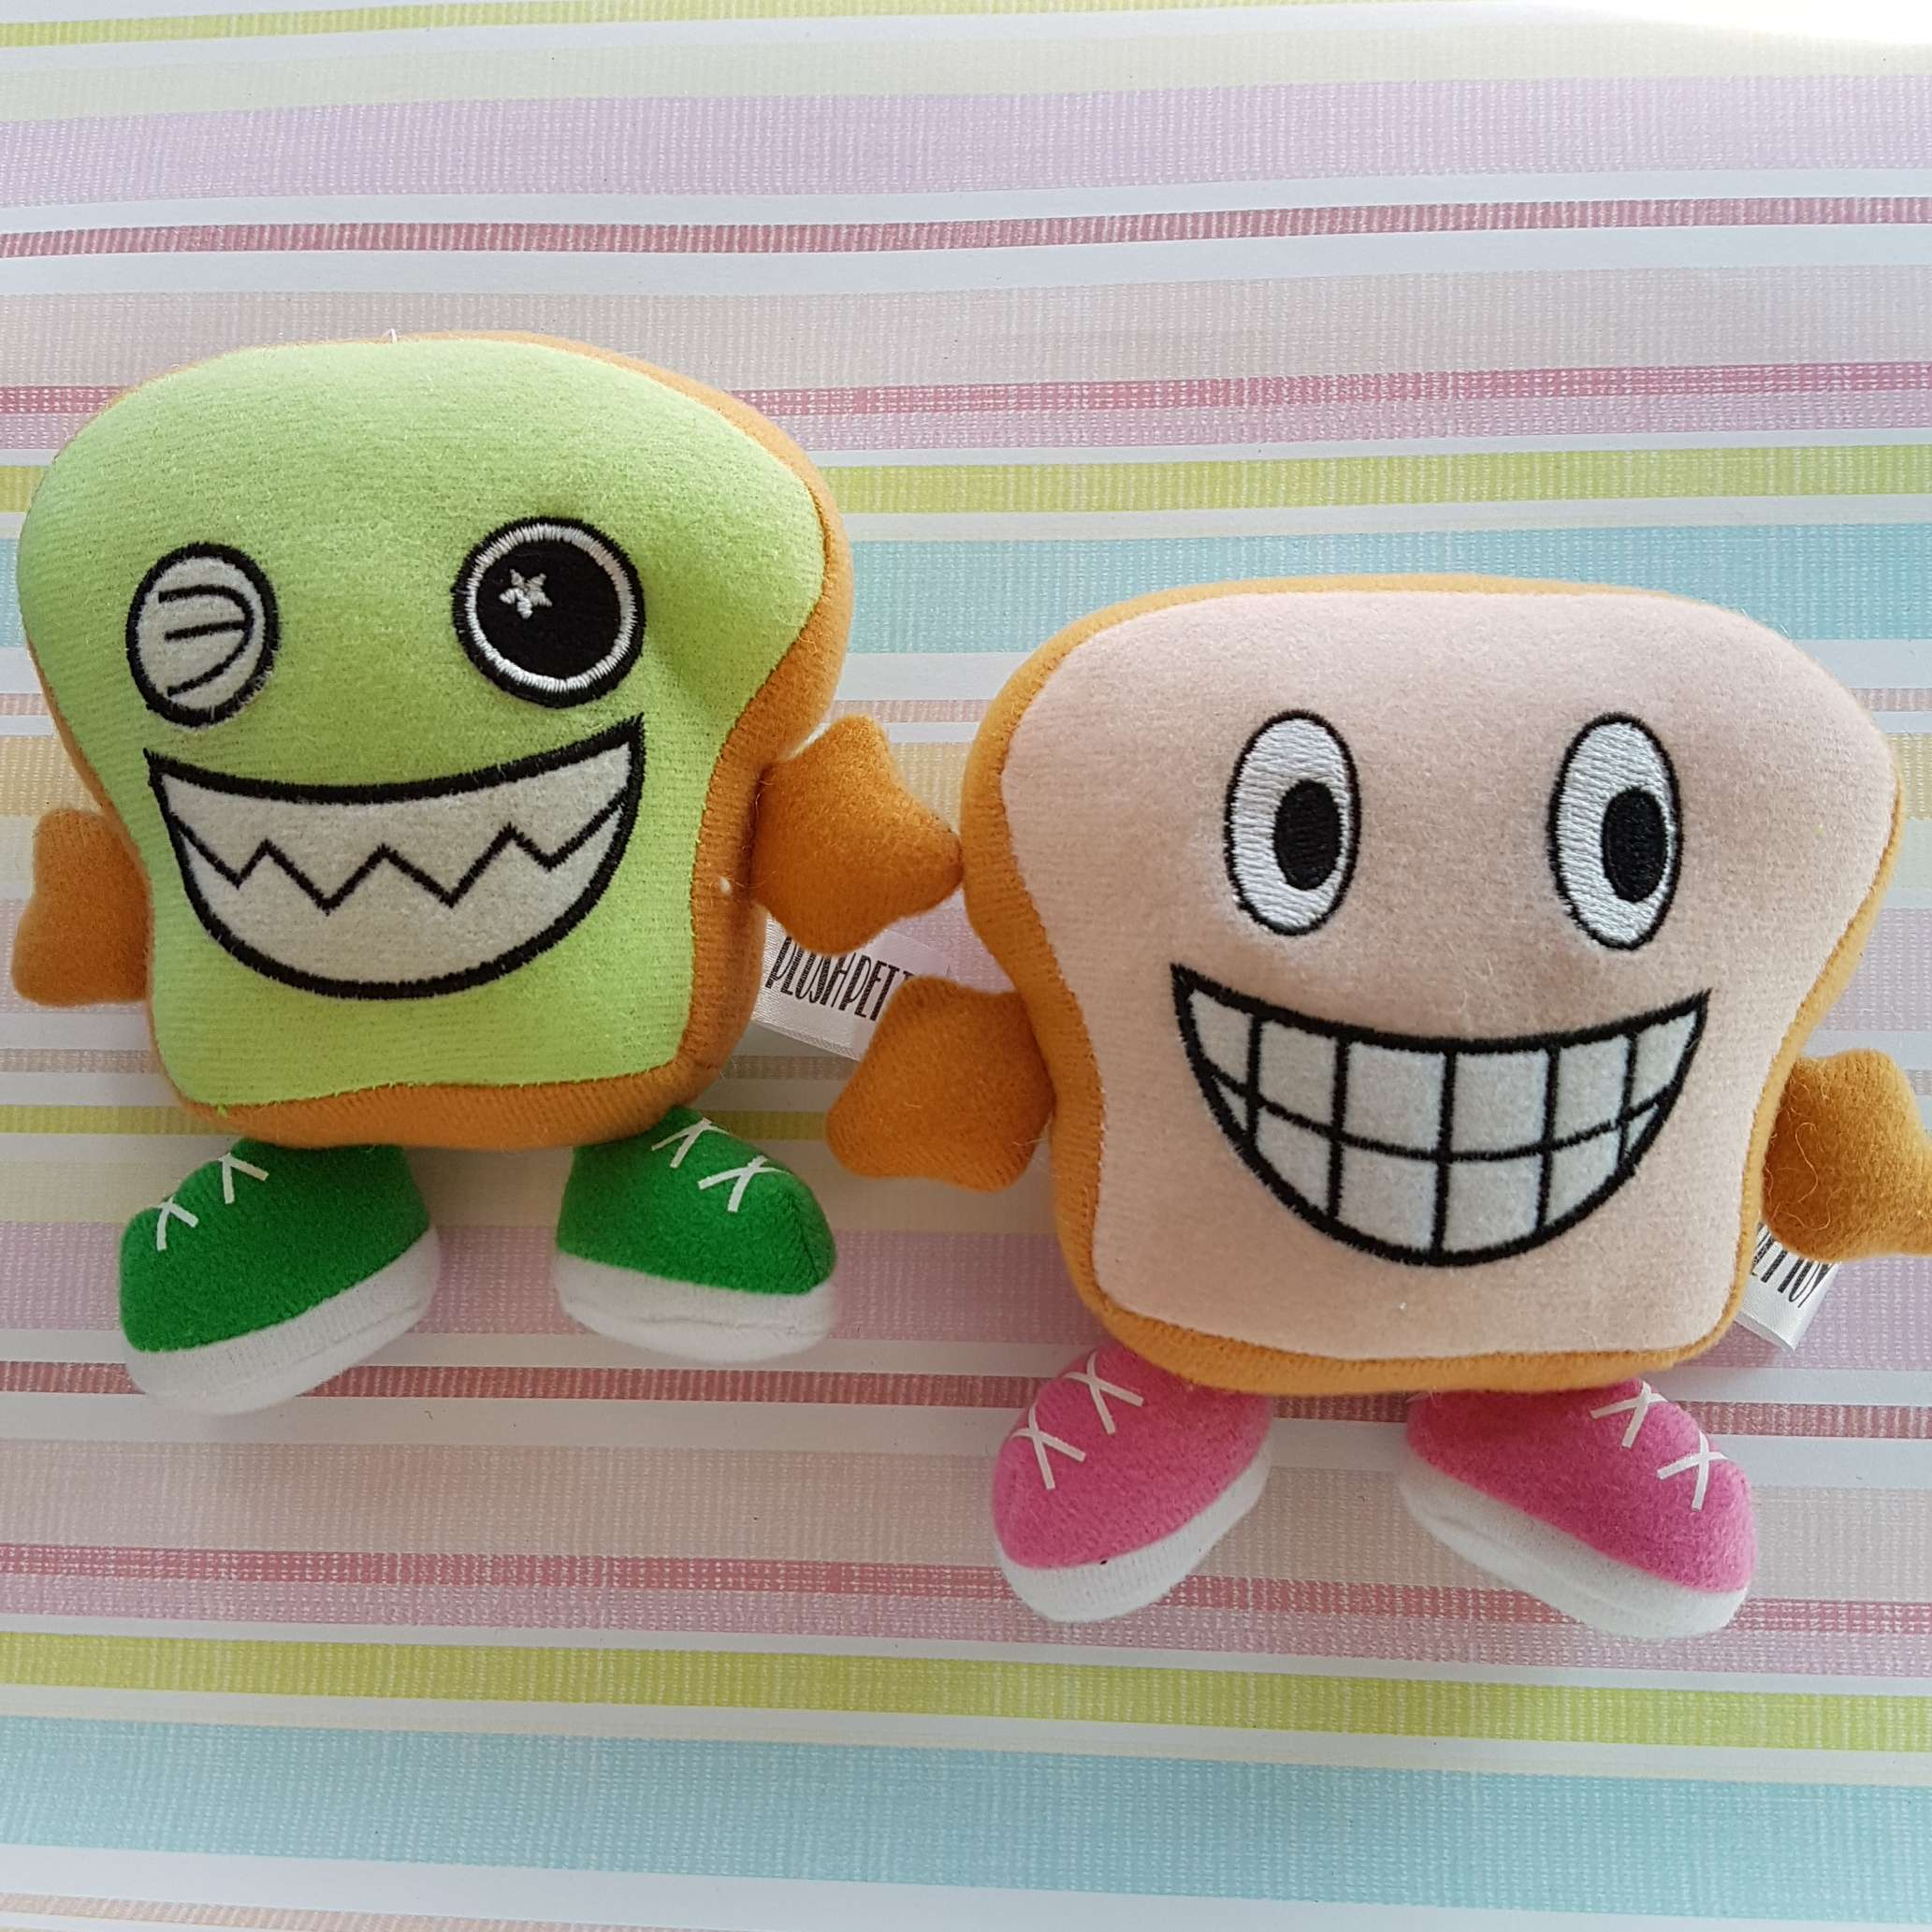 Toast Bread Face Plush Pet Toy with Loud Squeaky Sound Photo